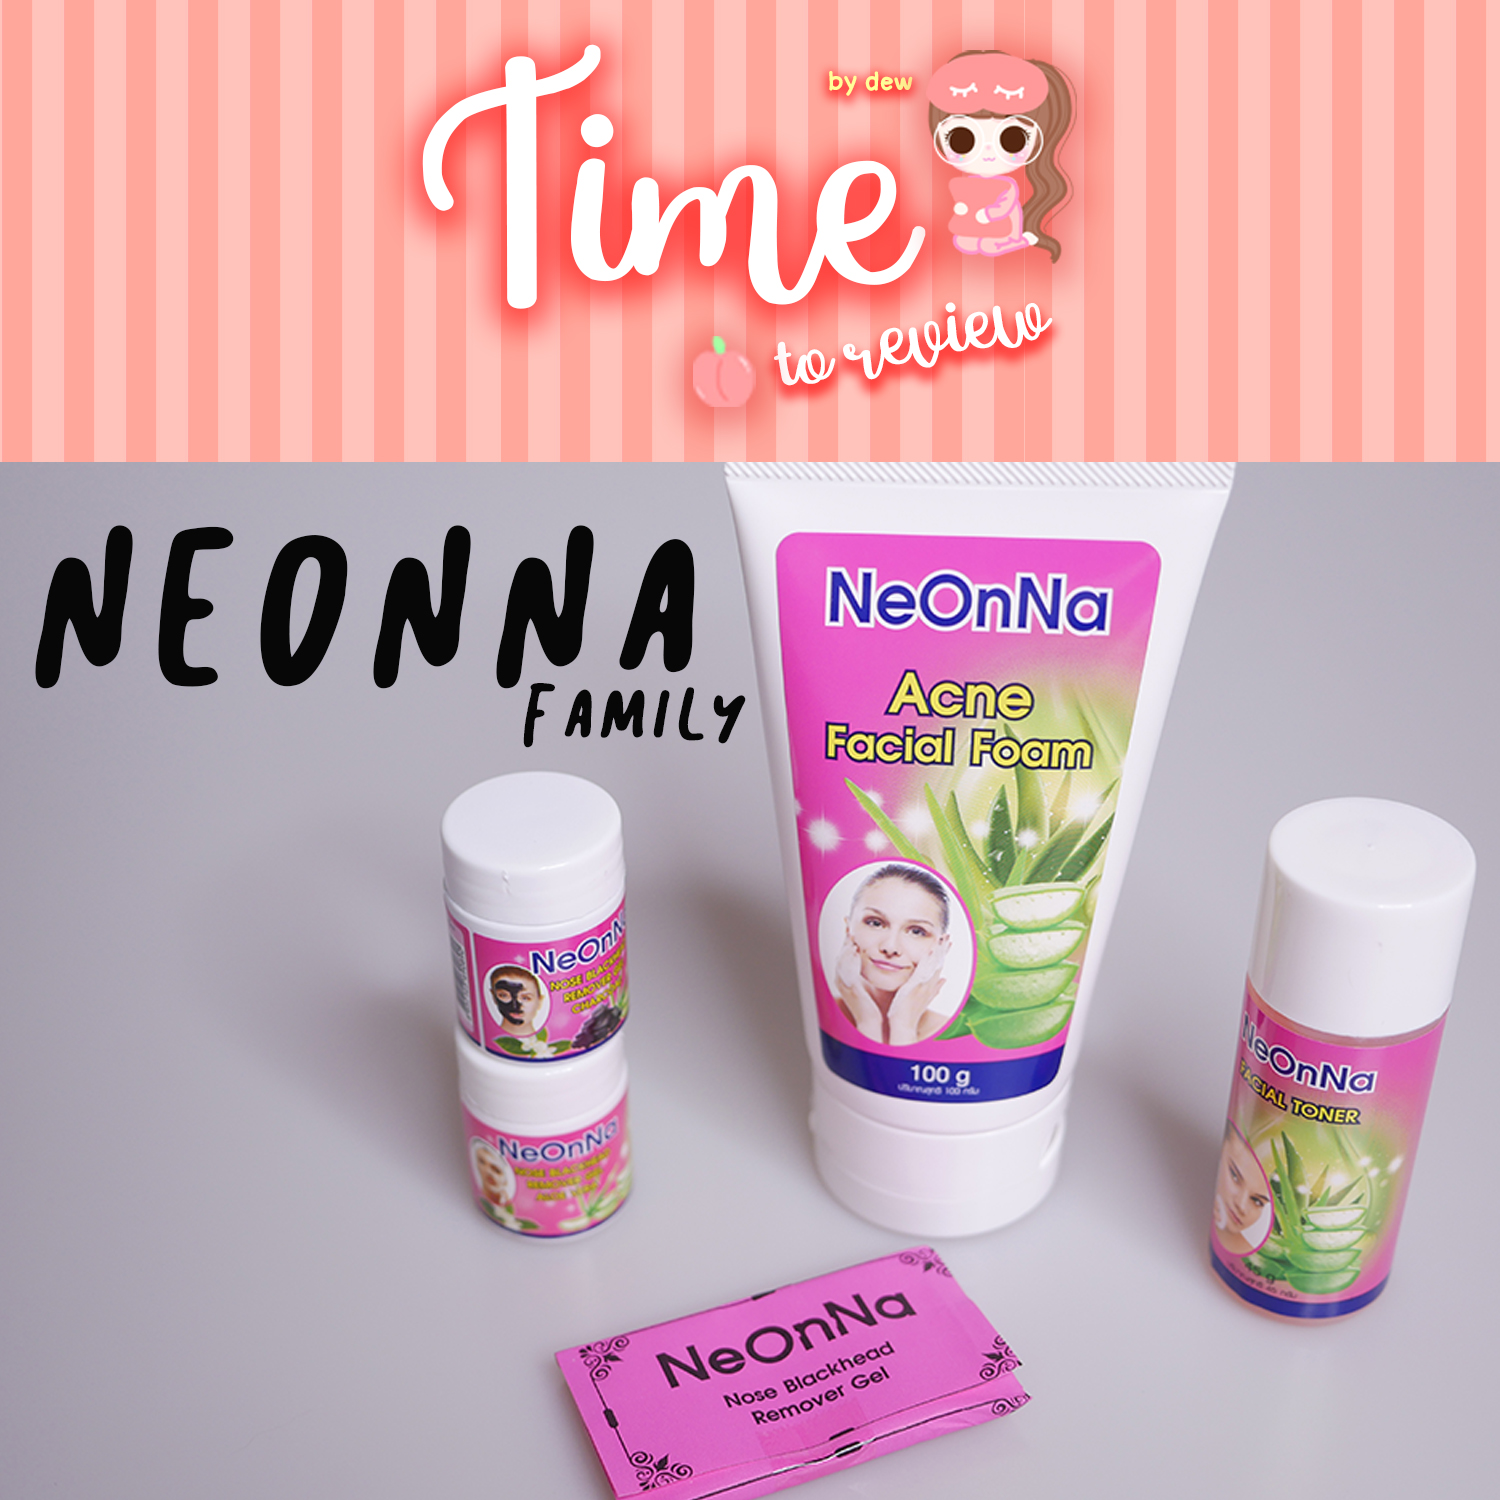 [Review] Neonna Family